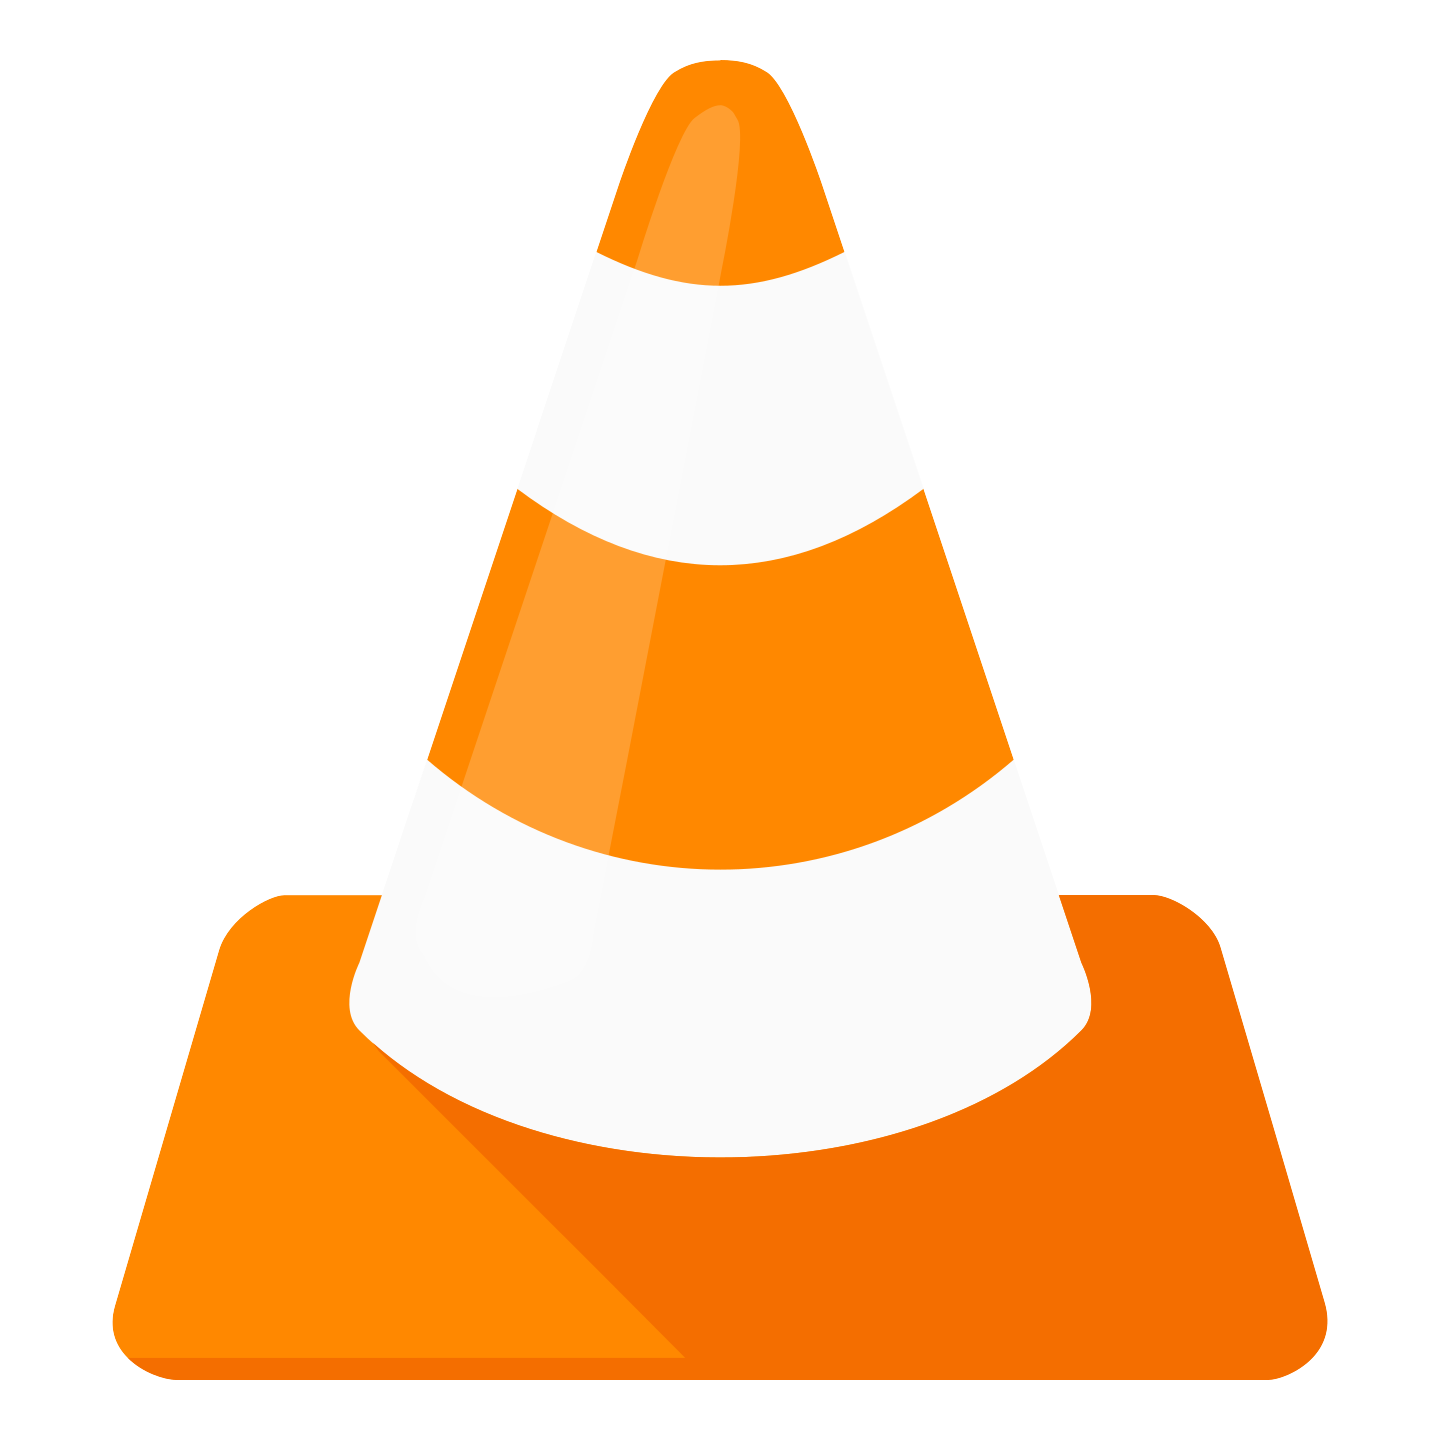 vlc-android/res/drawable-mdpi/ic_tv_icon_big.png